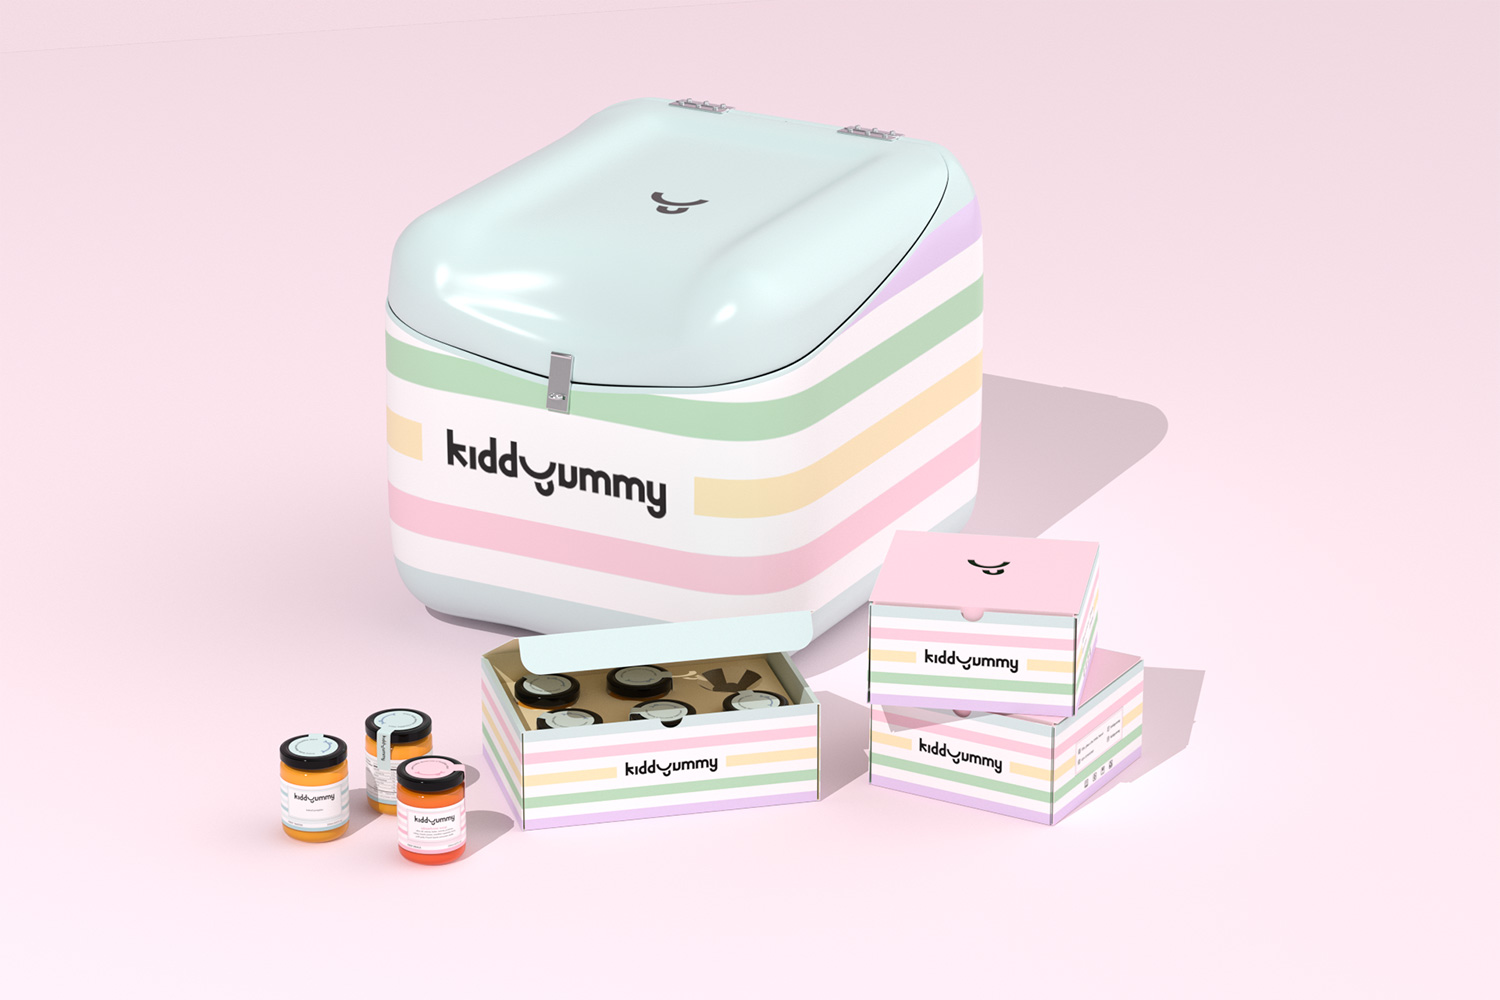 Kiddyummy Product Branding and Packaging Design by Xolve